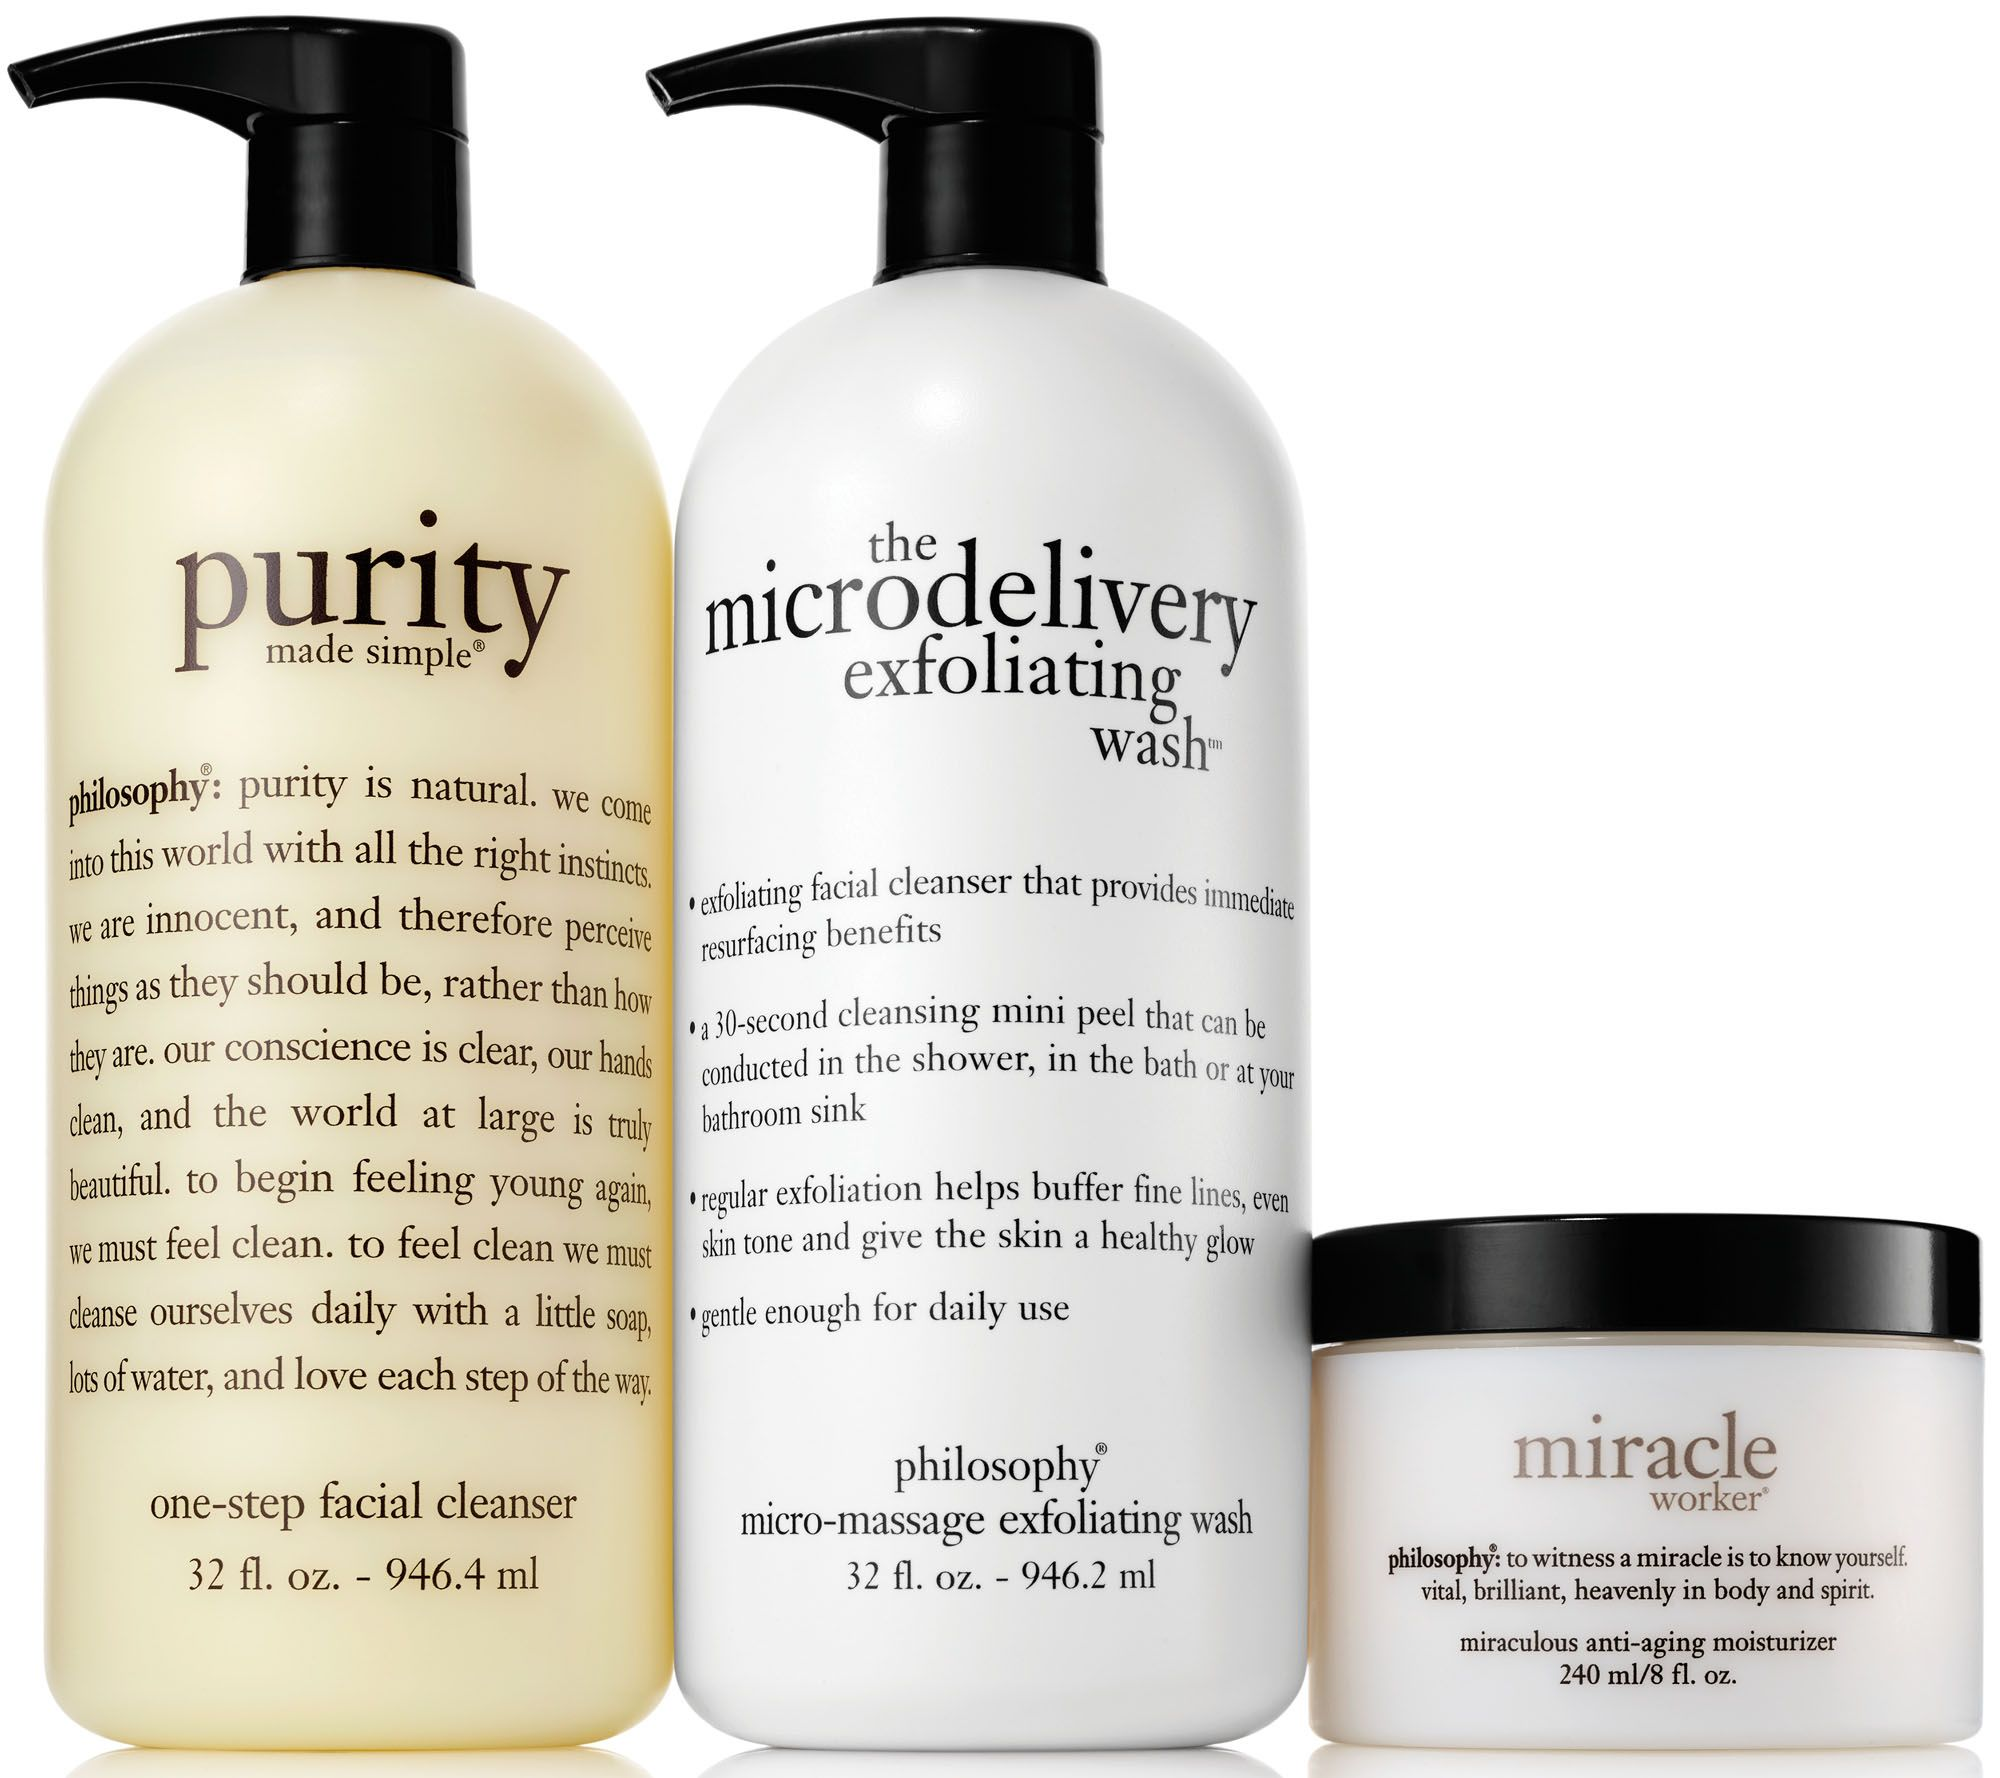 Philosophy Skin Care Online Remove Skin Tag In Houston Katy Philosophy Skin Care Online Cream Cottage Cheese Best Wrinkle Filler Cream Before Makeup Best Creams For Under Eye Wrinkles Olay Anti Wrinkle Eye Gel Now, an excessive amount stress and worry may result in unsightly facial scarring. Skin tone is not going to consider very pleasant with scars scattered more than the it; never mind if.